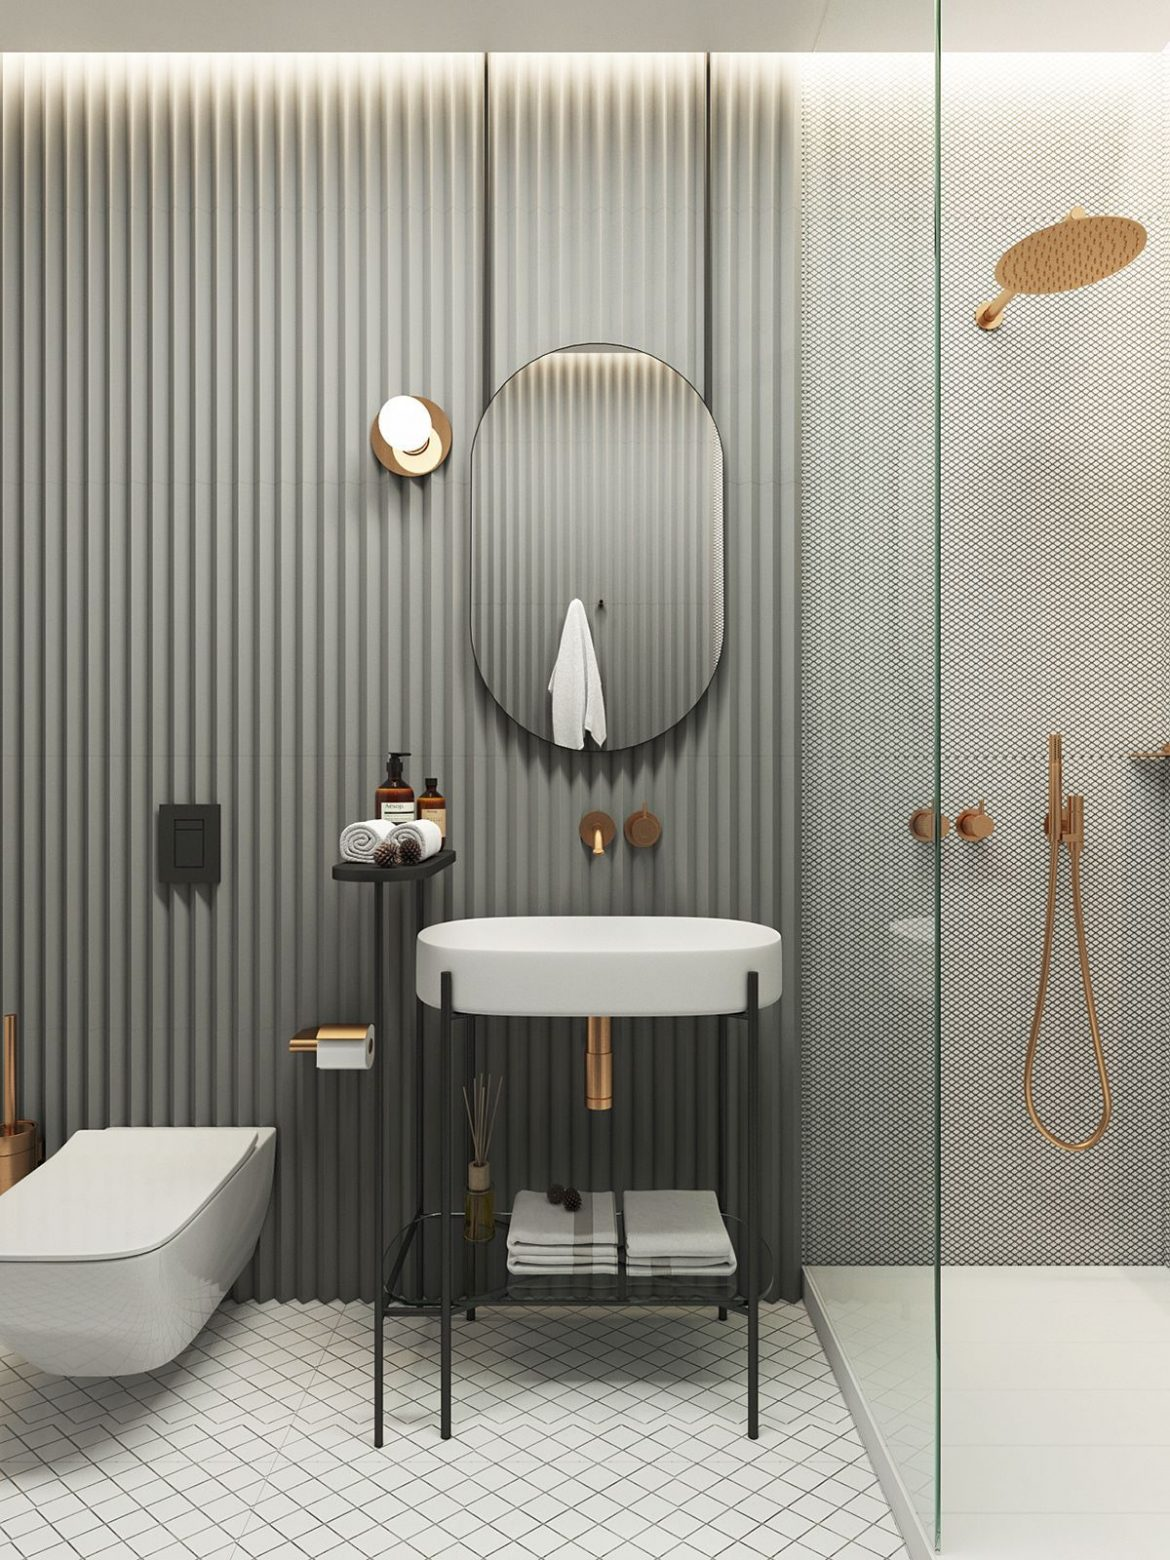 Discover Here The Hottest Bathroom Tile Trends 2021 2022